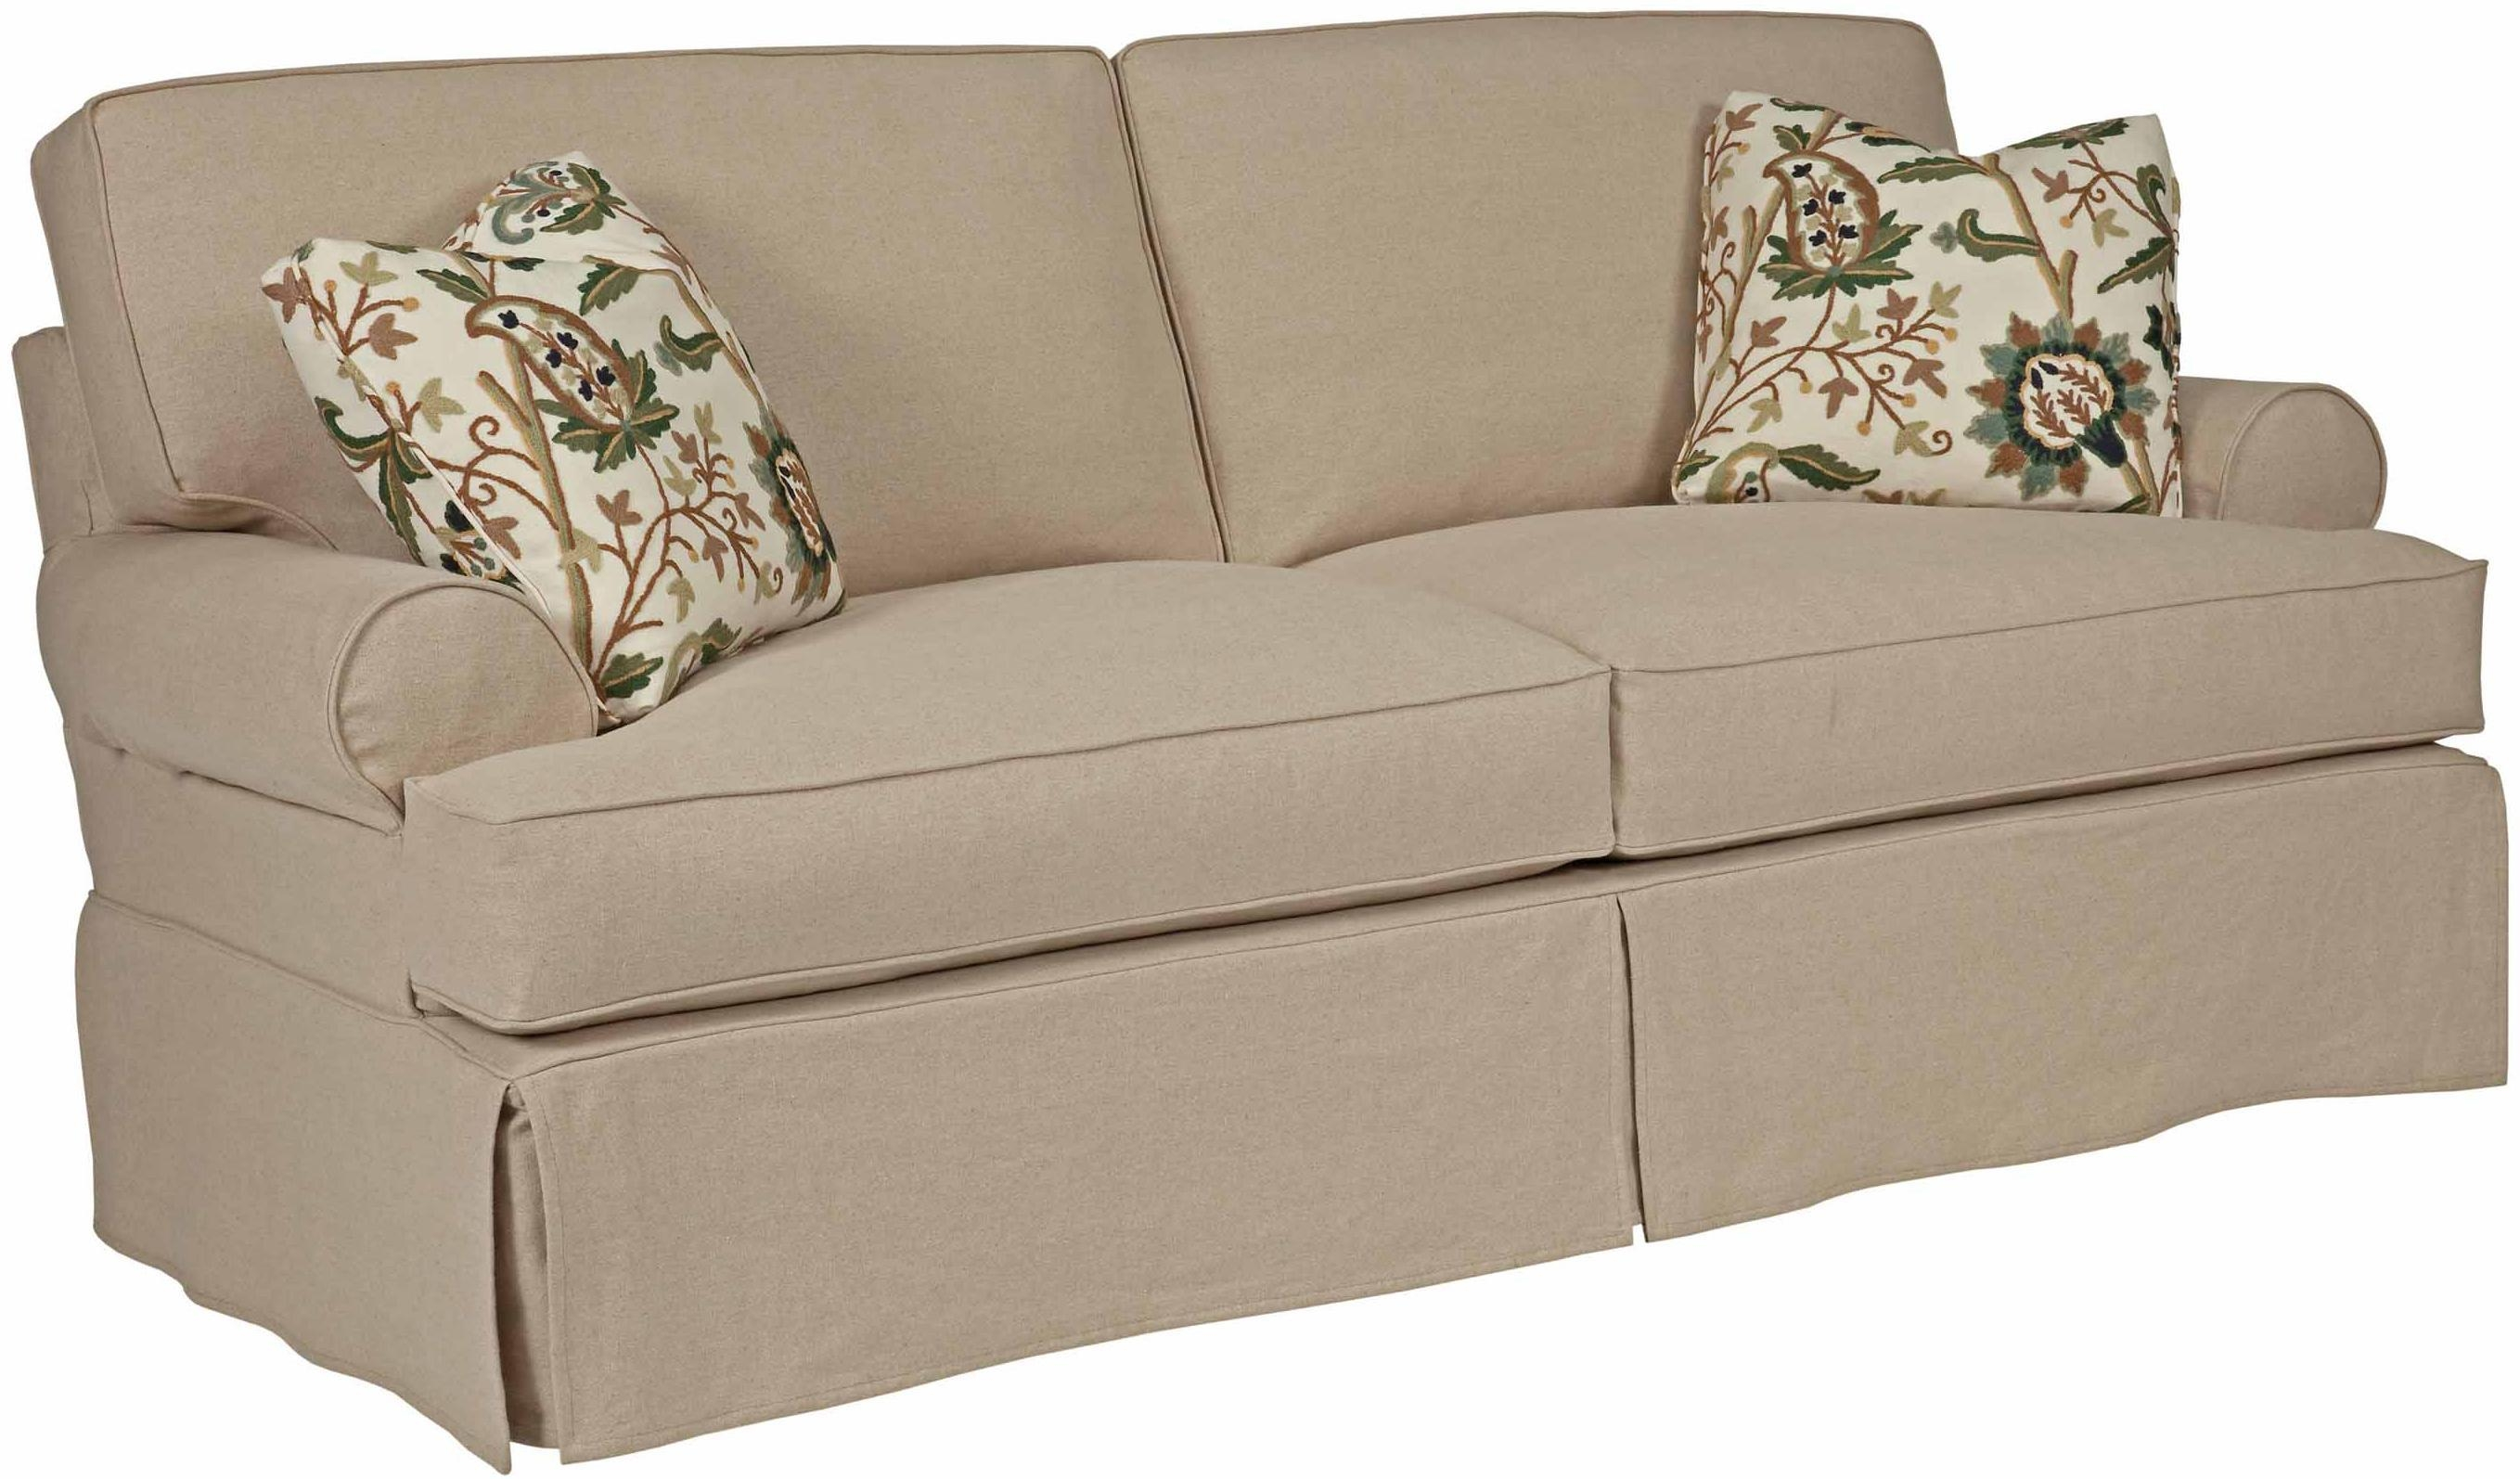 Furniture: Creates Clean Foundation That Complements Decorating Pertaining To T Cushion Slipcovers For Large Sofas (View 4 of 20)